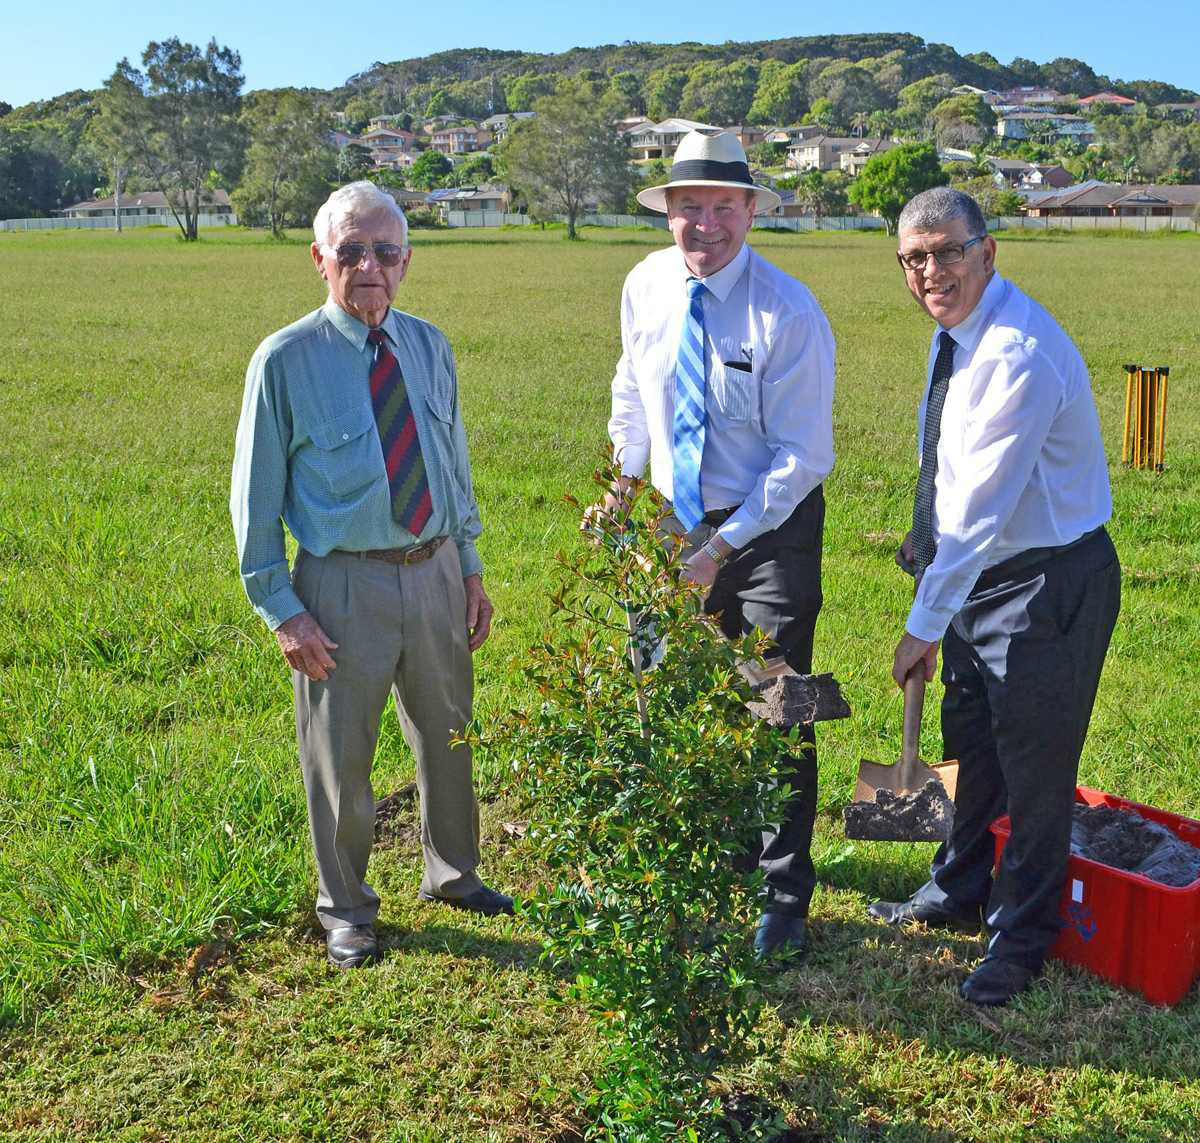 Member for Myall Lakes Stephen Bromhead joined the NSW Minister for Ageing The Hon John Ajaka to turn a grass sod to mark the start of stage one of the Pacific Cape project, a new aged care facility in Forster.